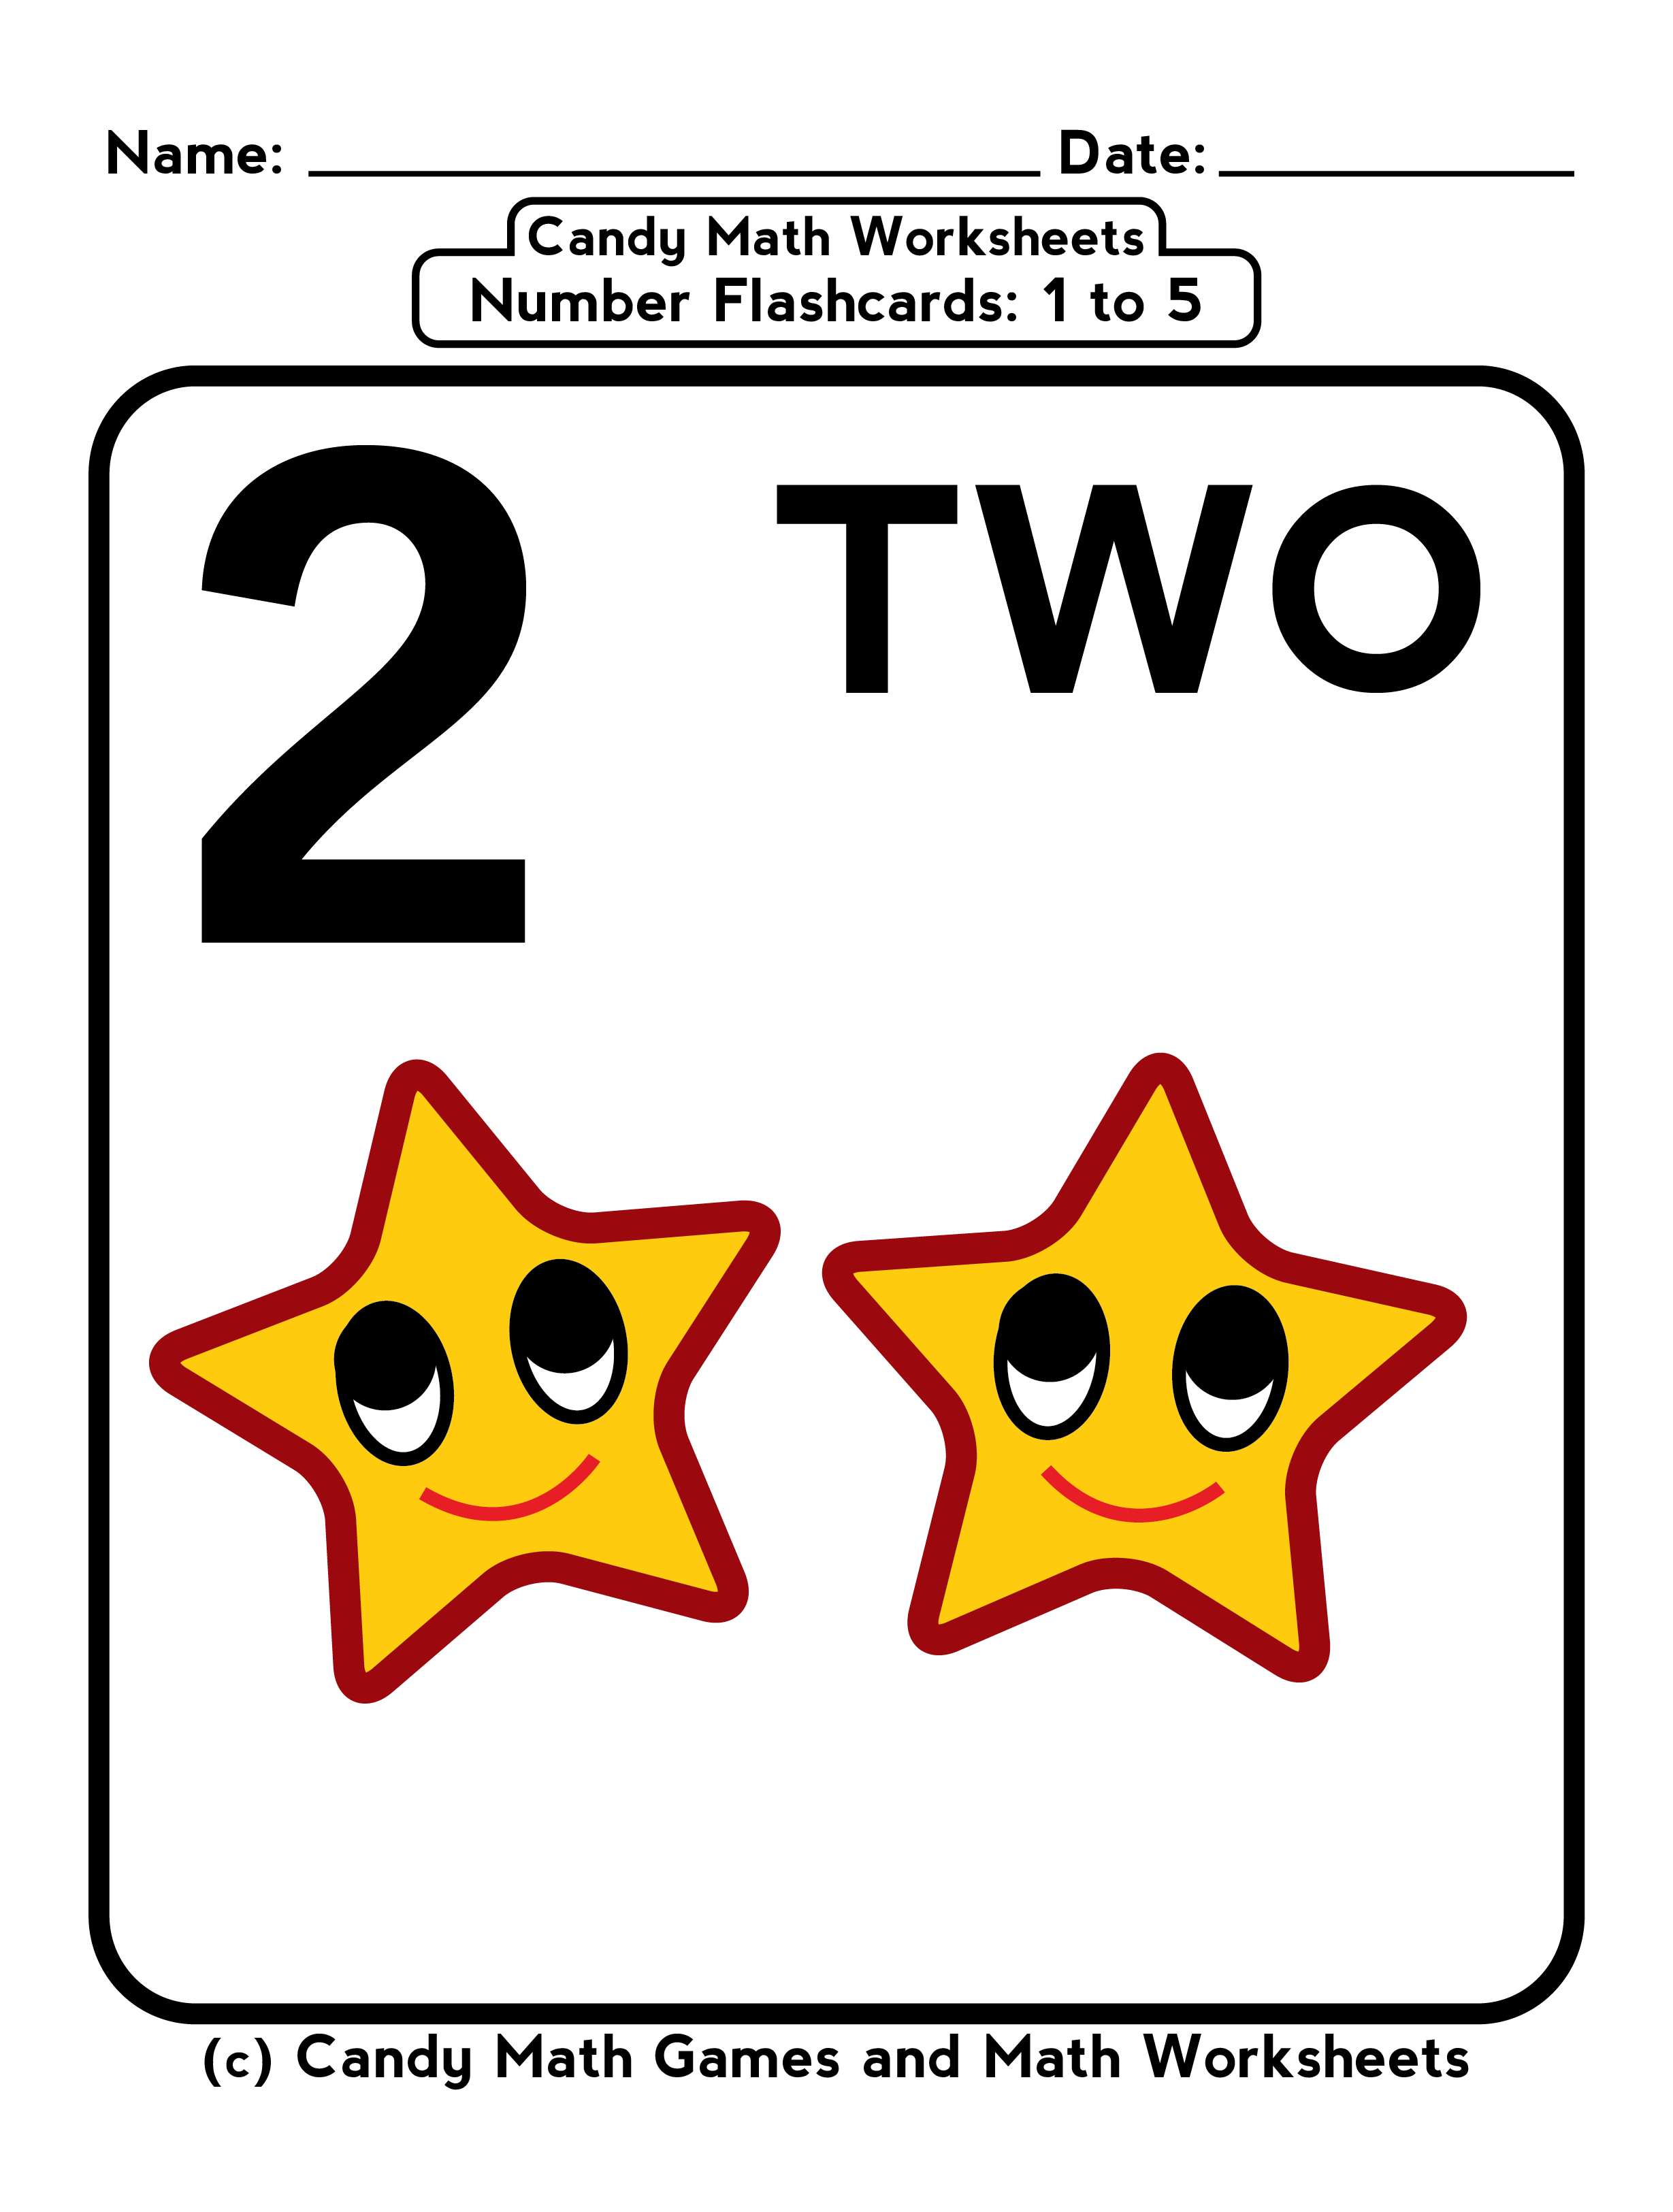 5 Free Math Worksheets And Counting Flashcards For Kids